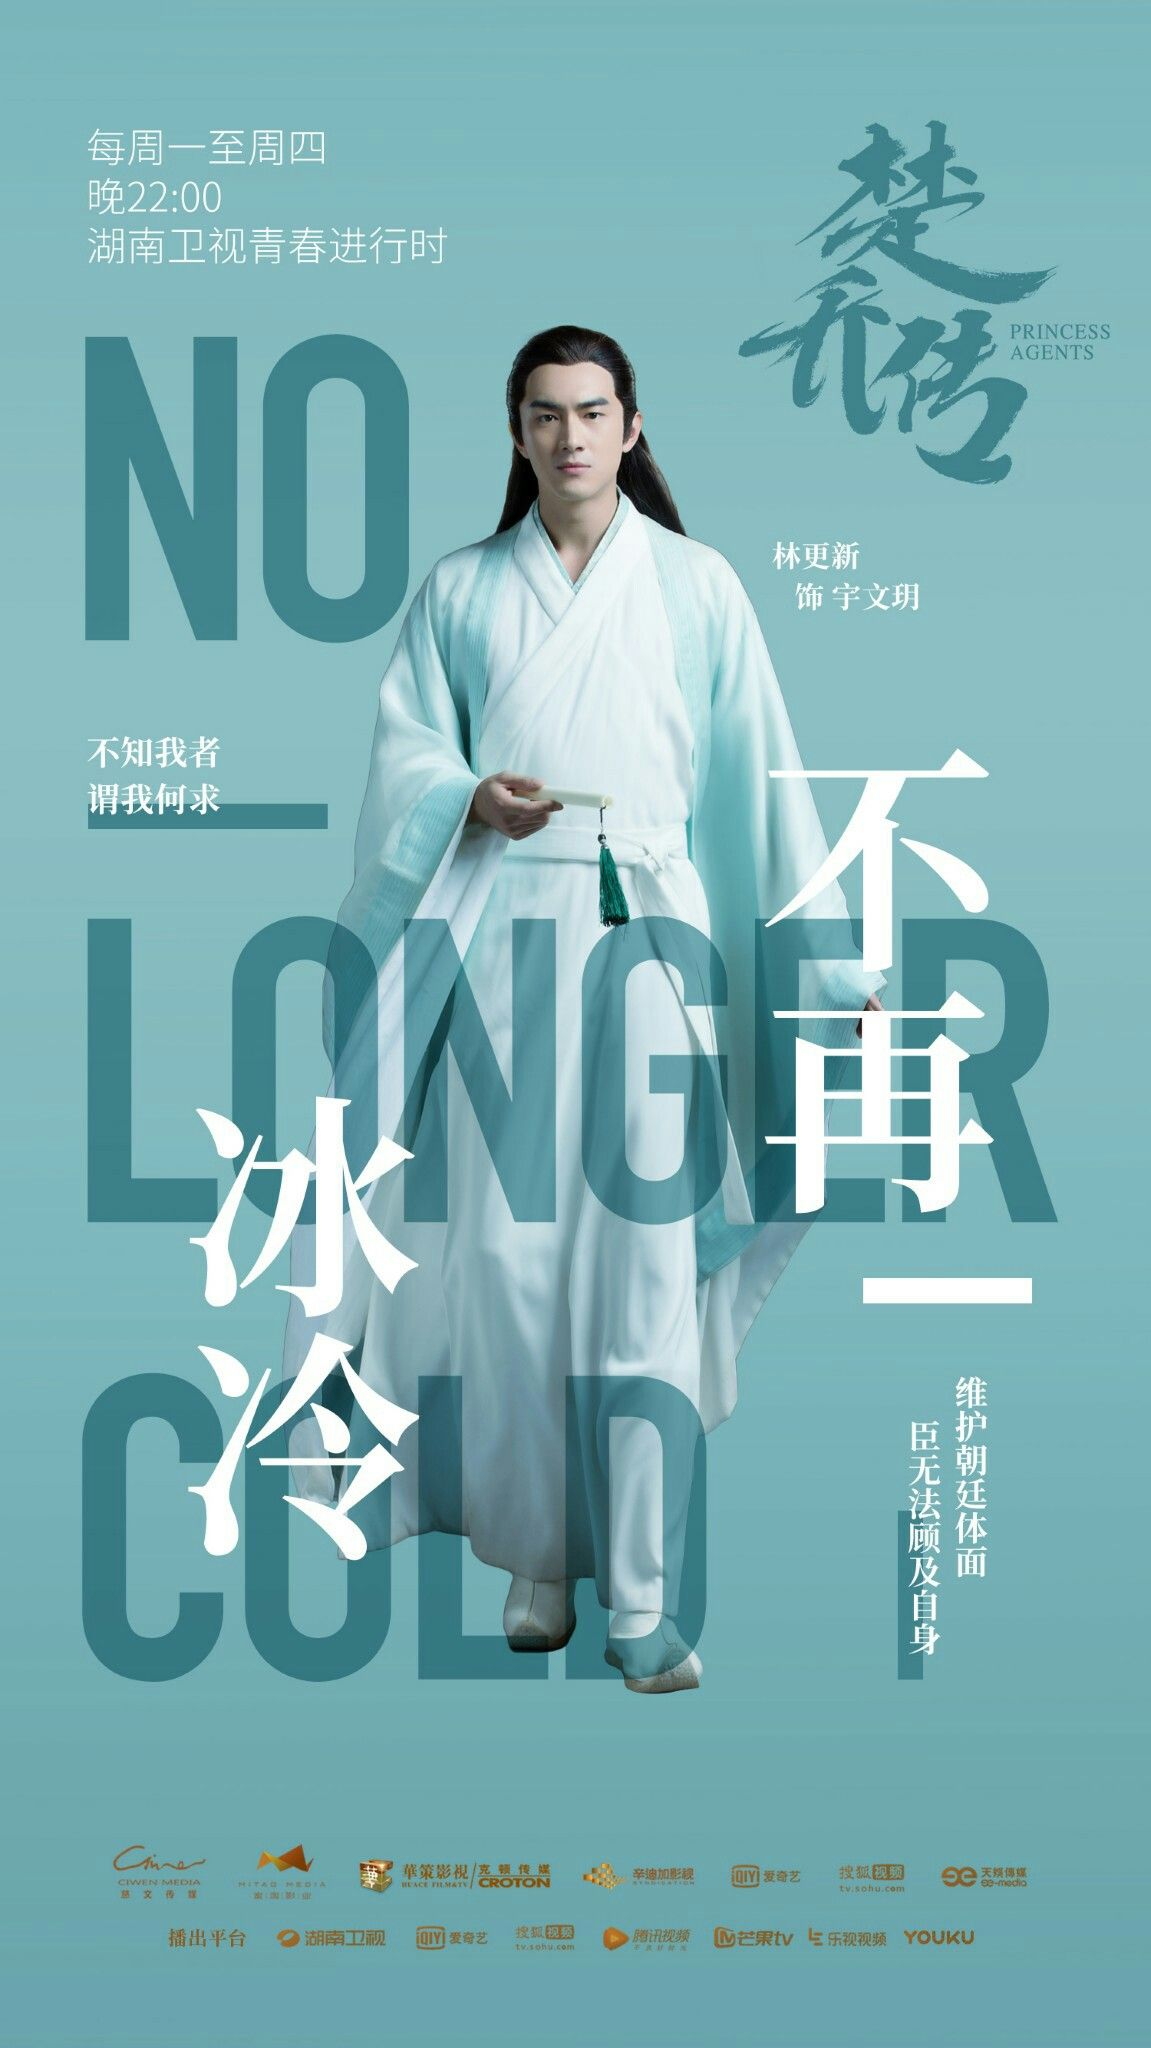 New Poster Of Yuwen Yue From Princess Agents Princess Agents Dm Design Poster Design